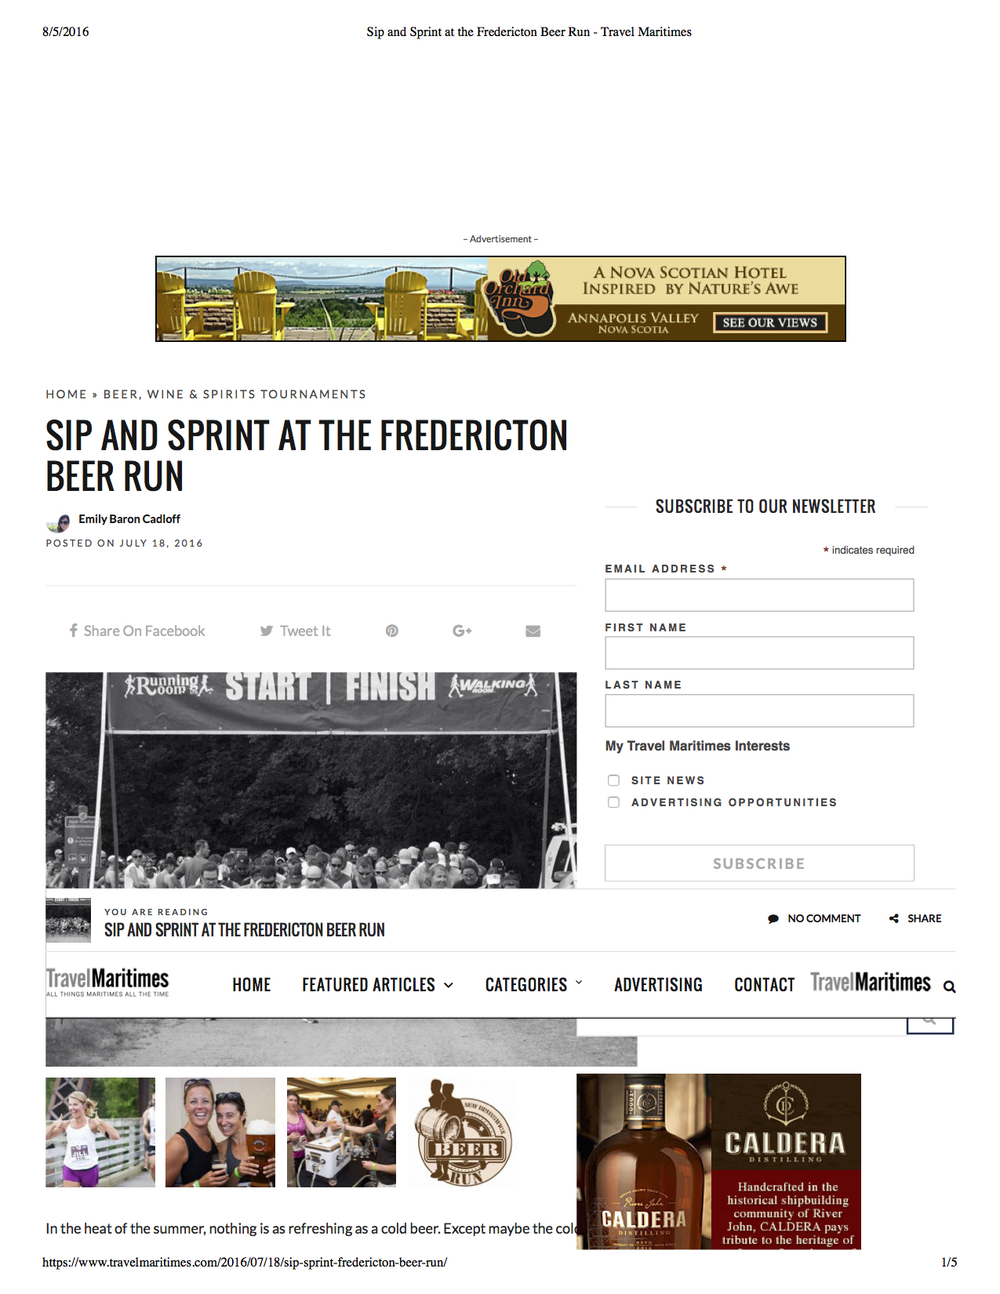 Travel feature on Fredericton Beer Run. Travel Maritimes, July 2016